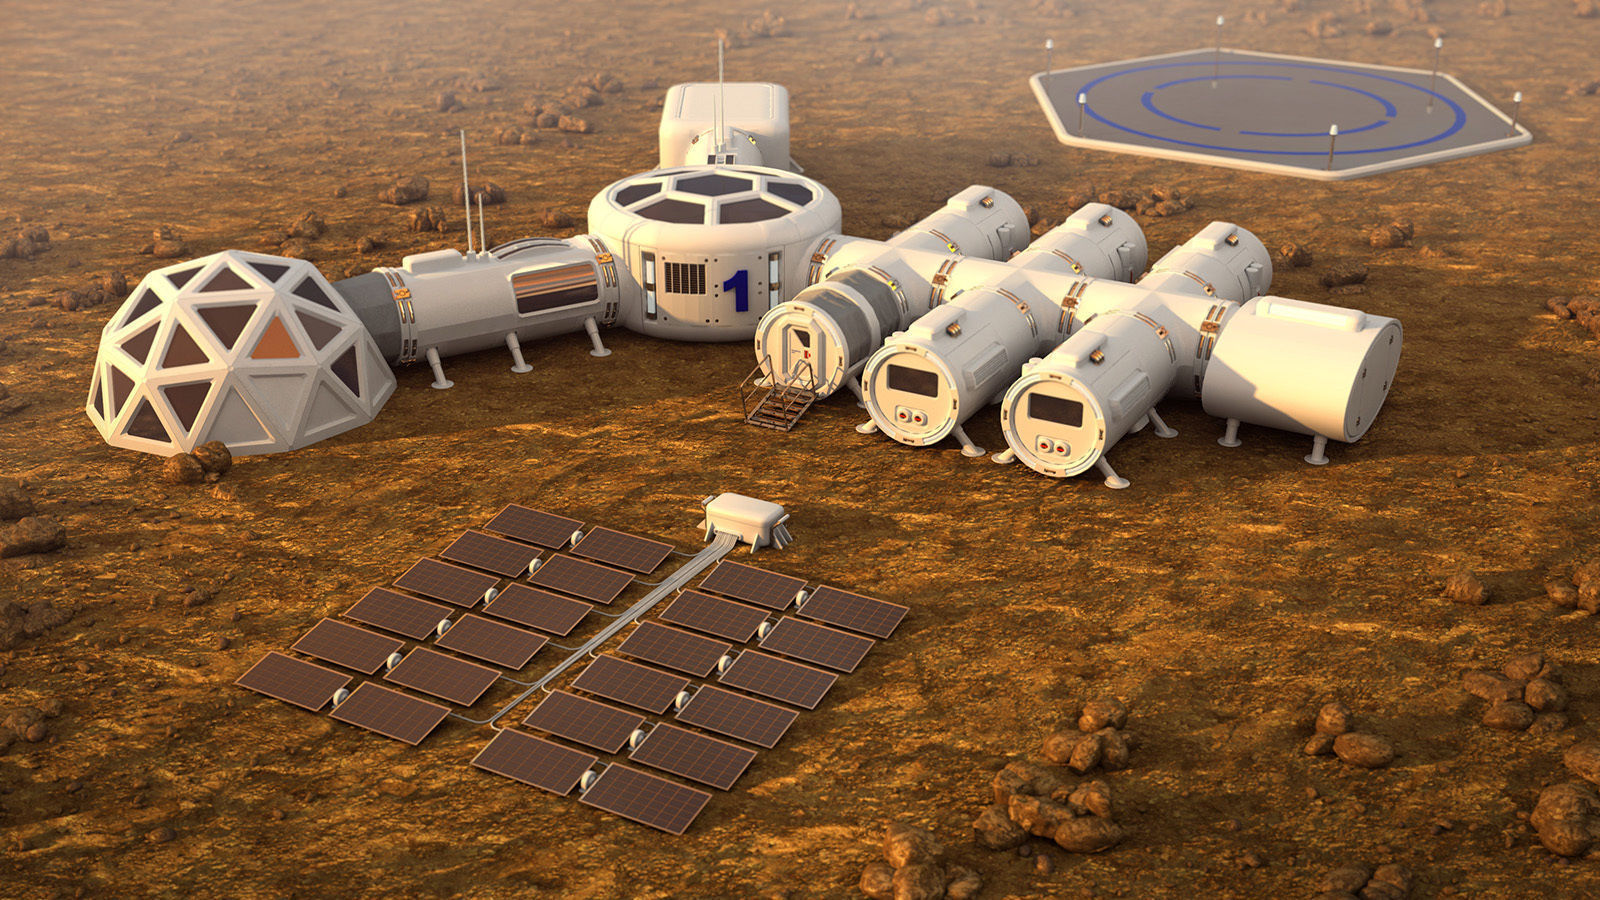 Kites On Mars To Harness Energy For Human Colonies